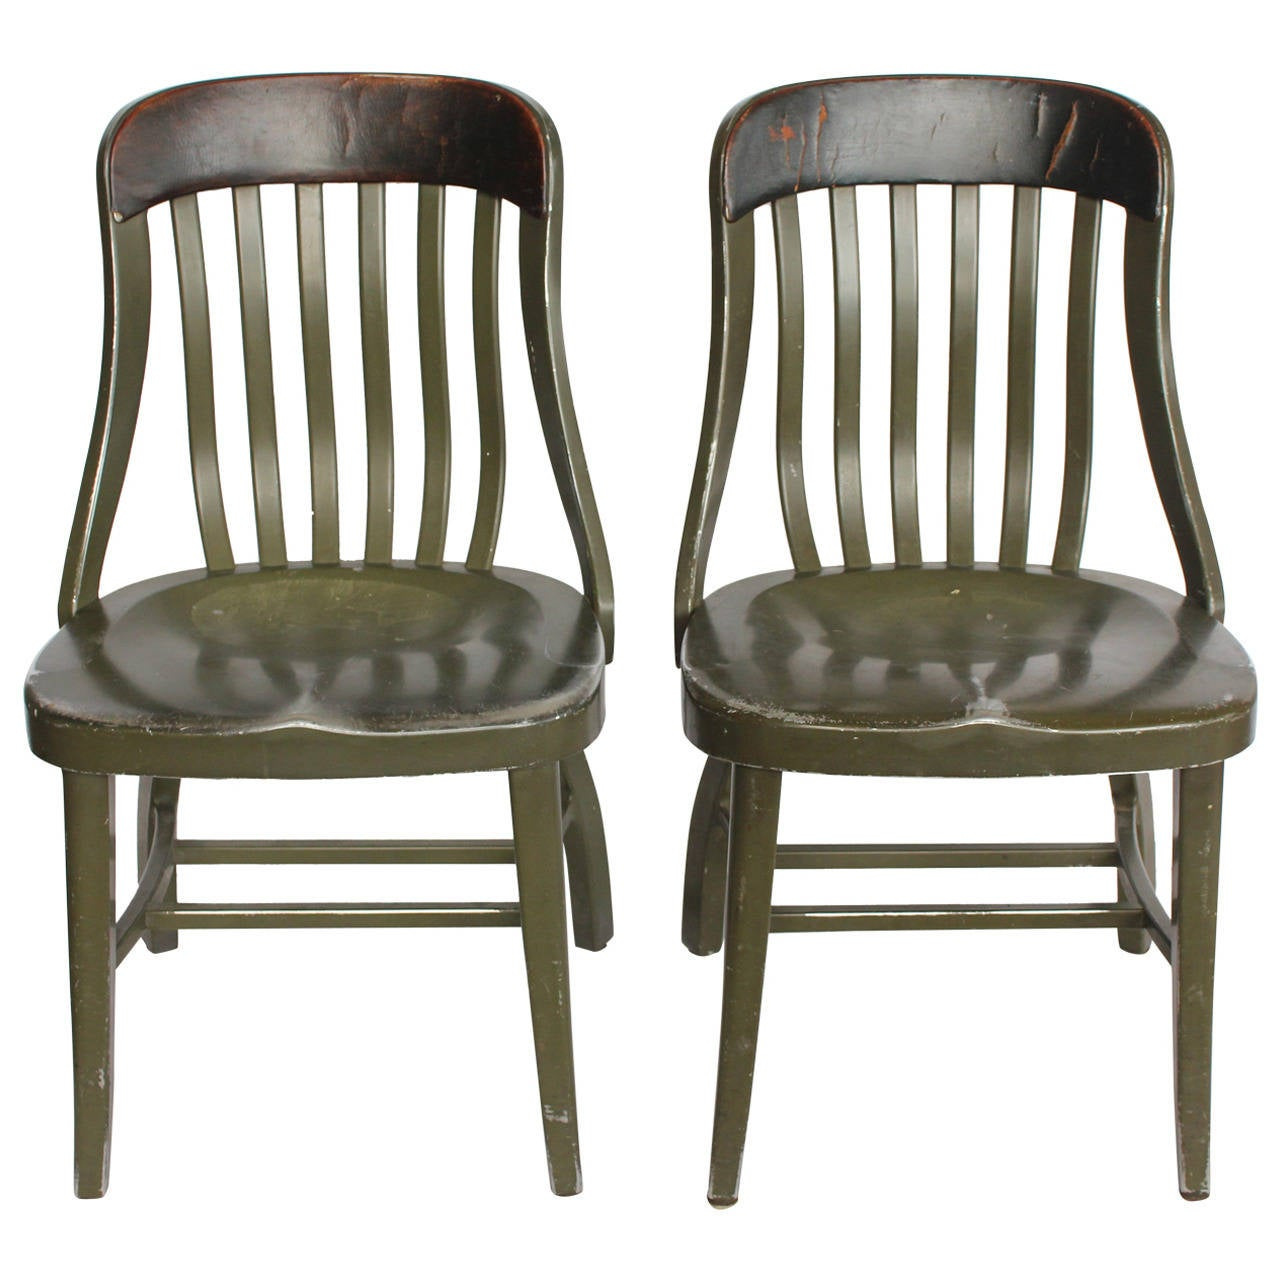 Vintage Metal Chairs By Shaw Walker At 1stdibs